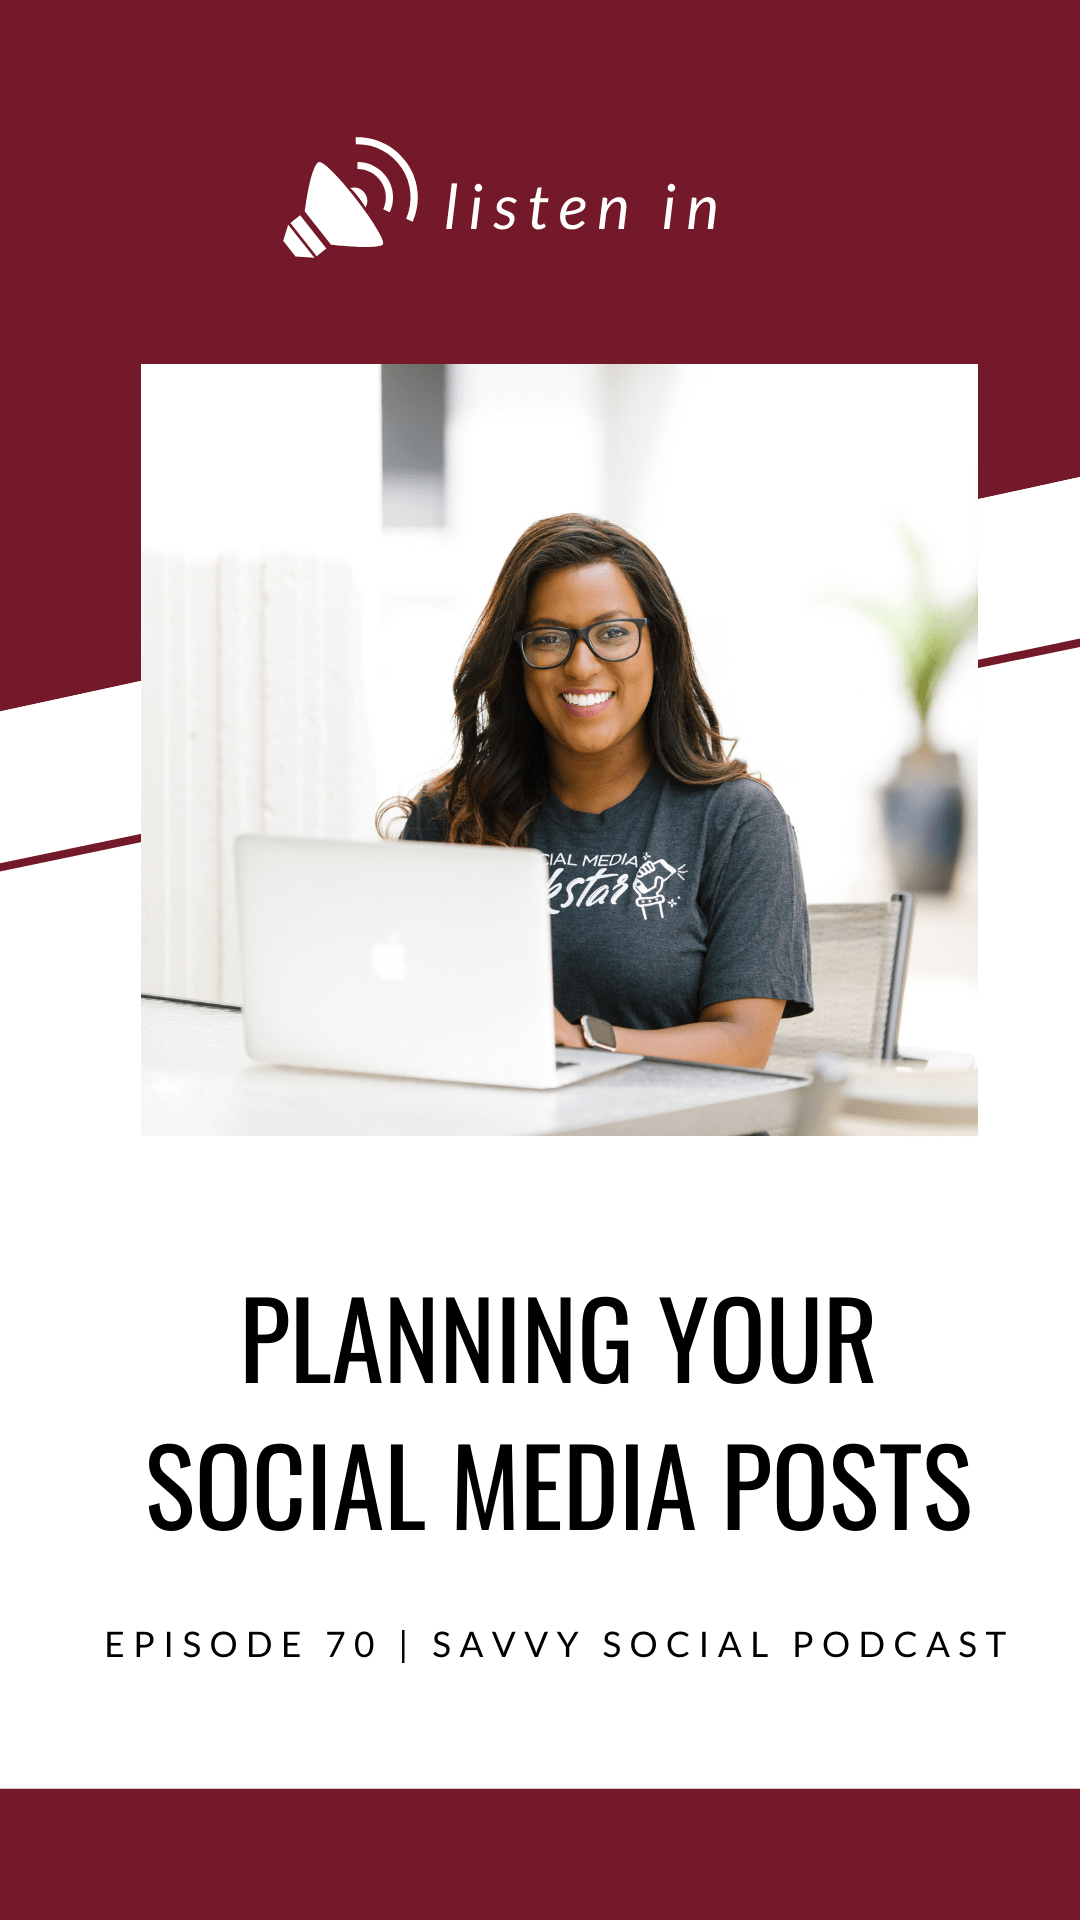 If you\'re a beginner at social media, you need to take the time to plan out what your posts are going to look like. Listen now for the tips you need to get started.